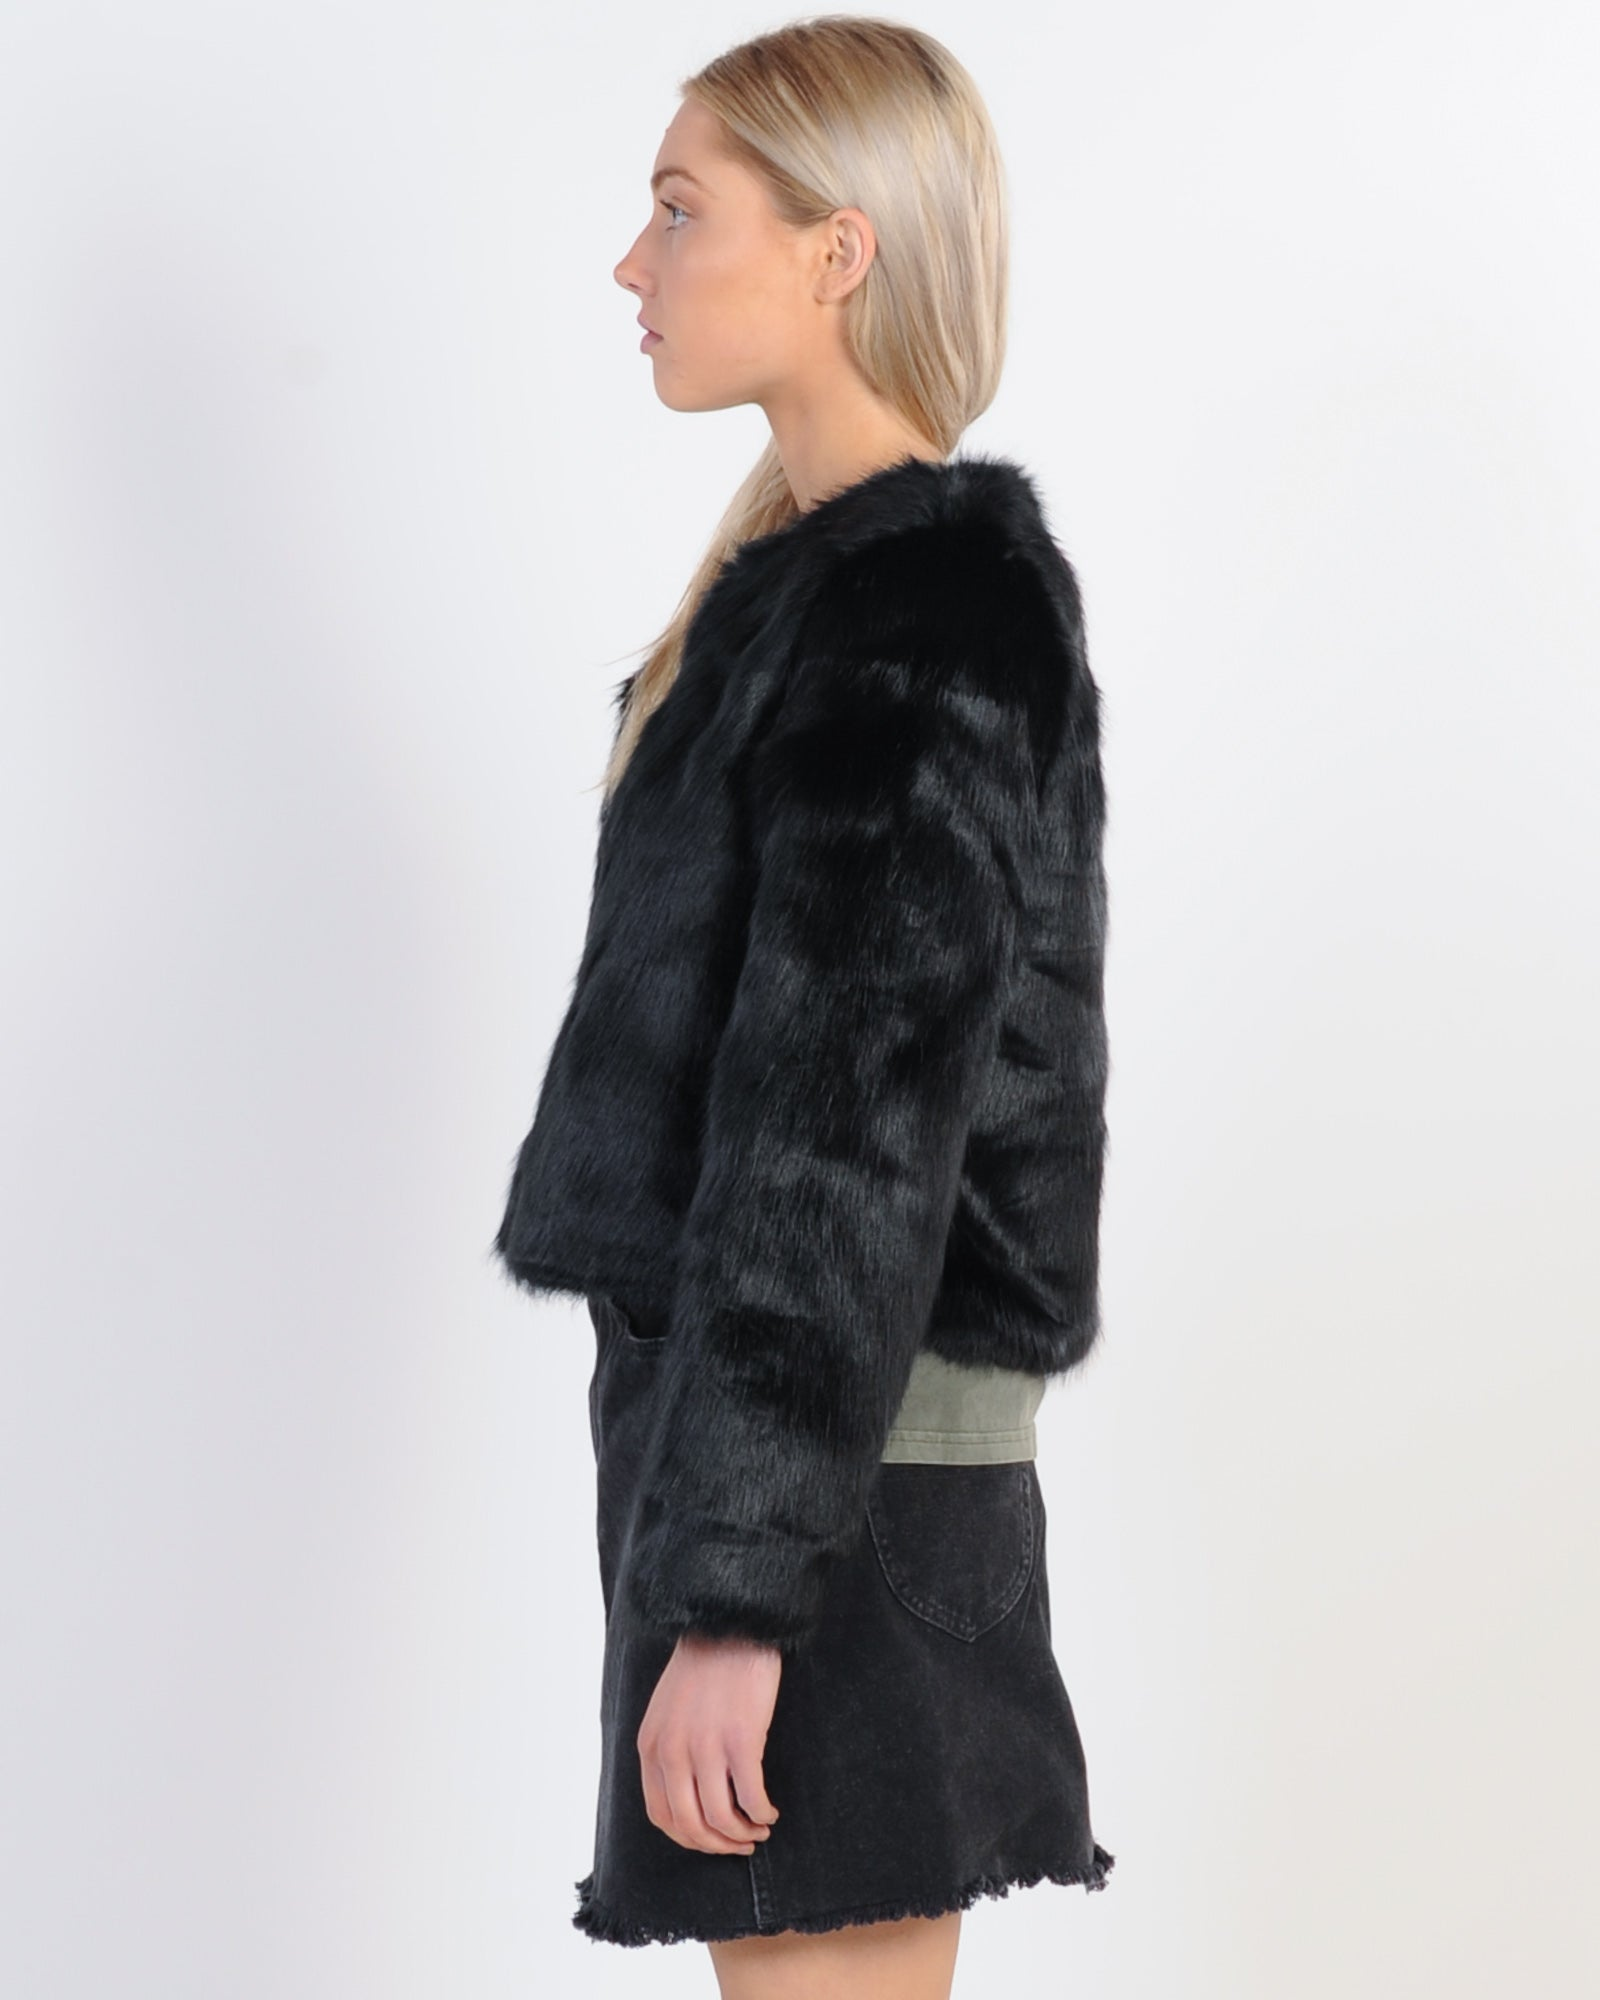 On The Prowl Faux Fur Jacket - Black